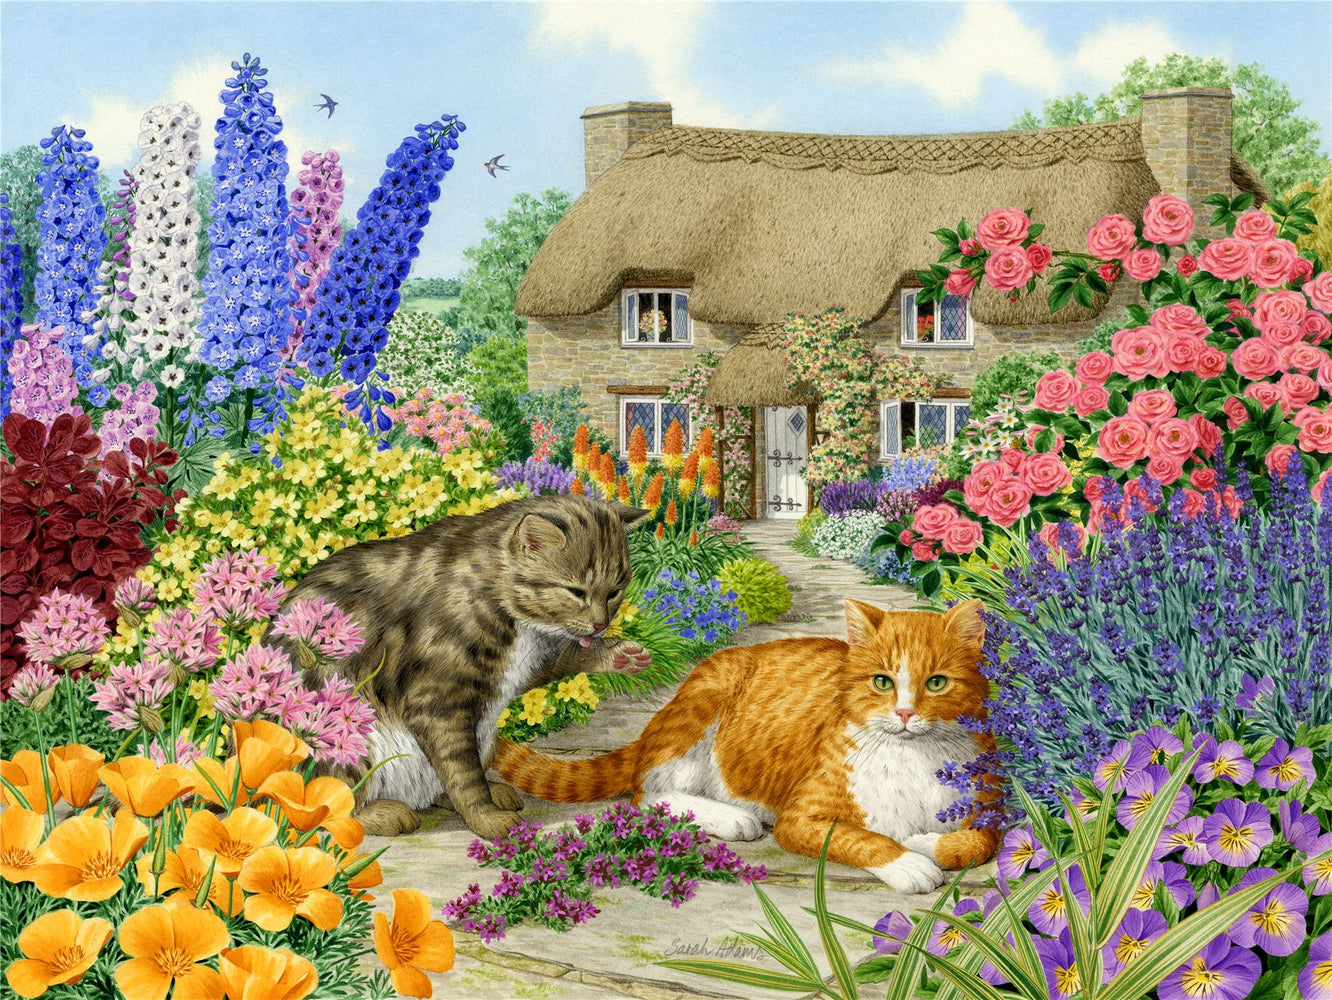 Spring Cottage Cats - Sarah Adams 1000 and 500 Piece Jigsaw Puzzle - All Jigsaw Puzzles